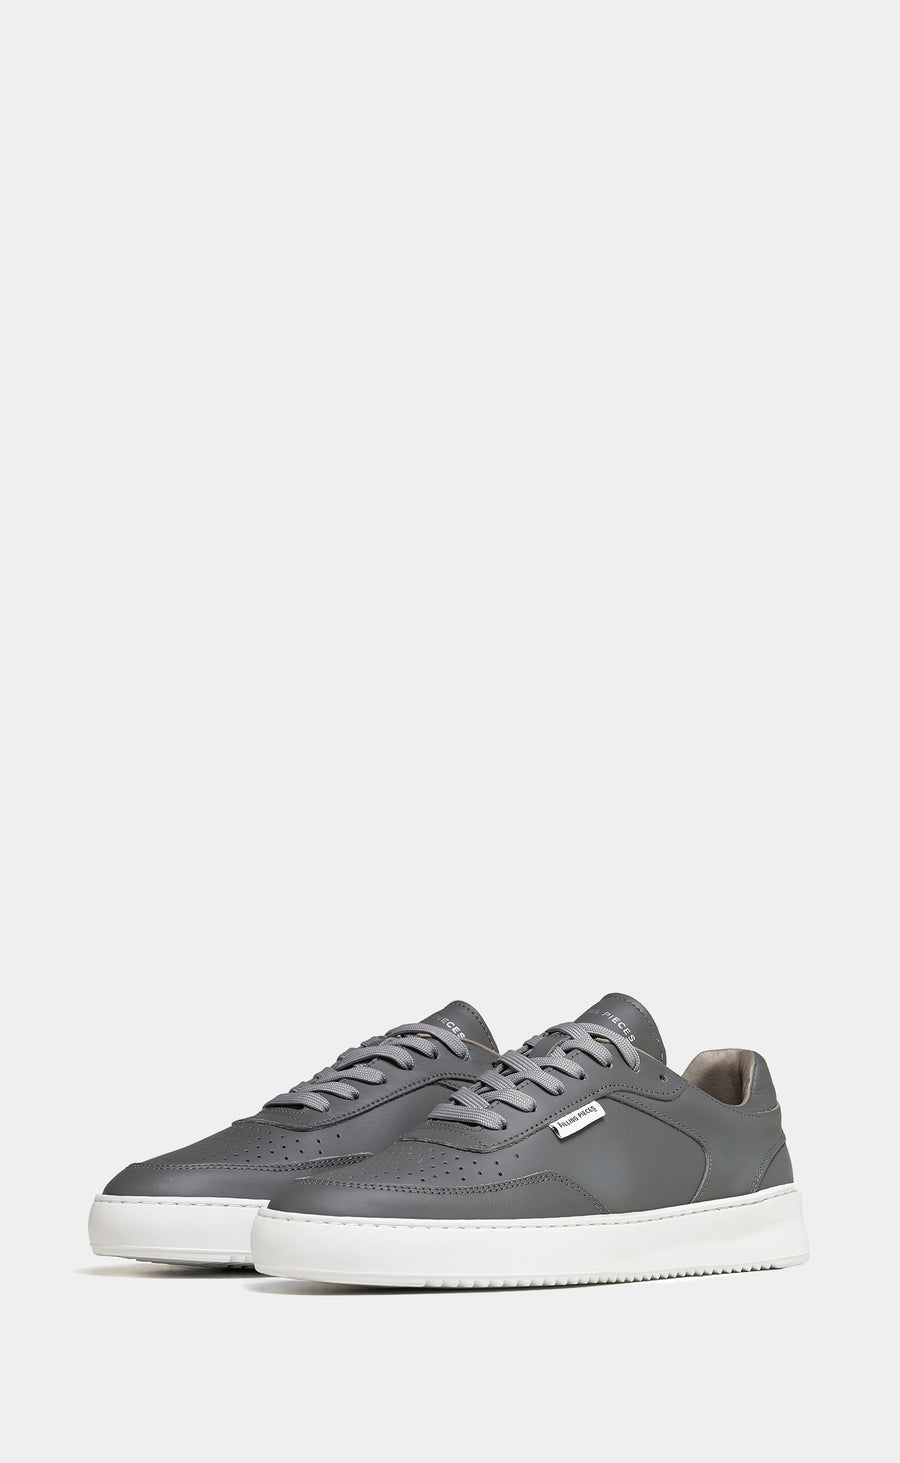 Spate Ripple Phase Grey - men